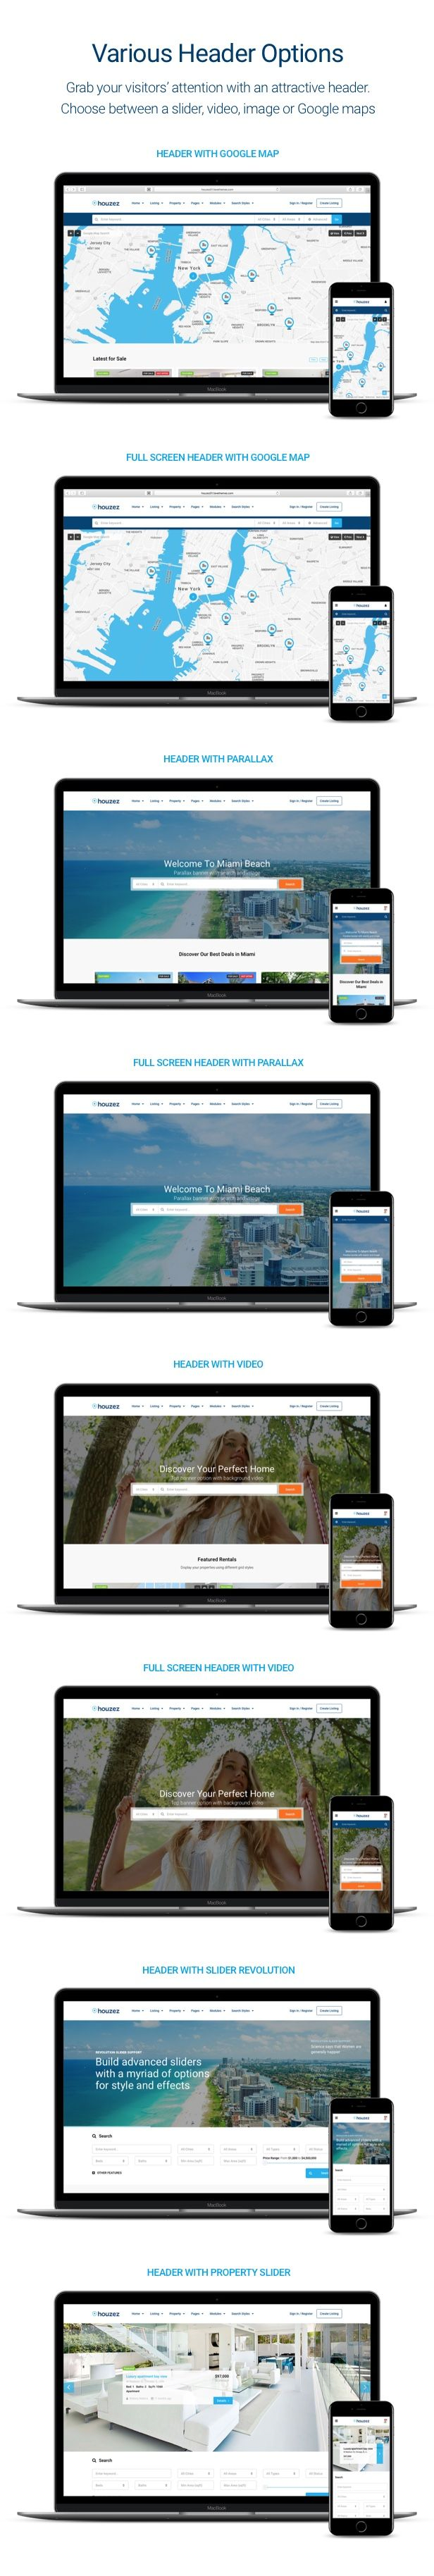 #Wordpress #Theme #themeforest #Website #Web #WebsiteDesign